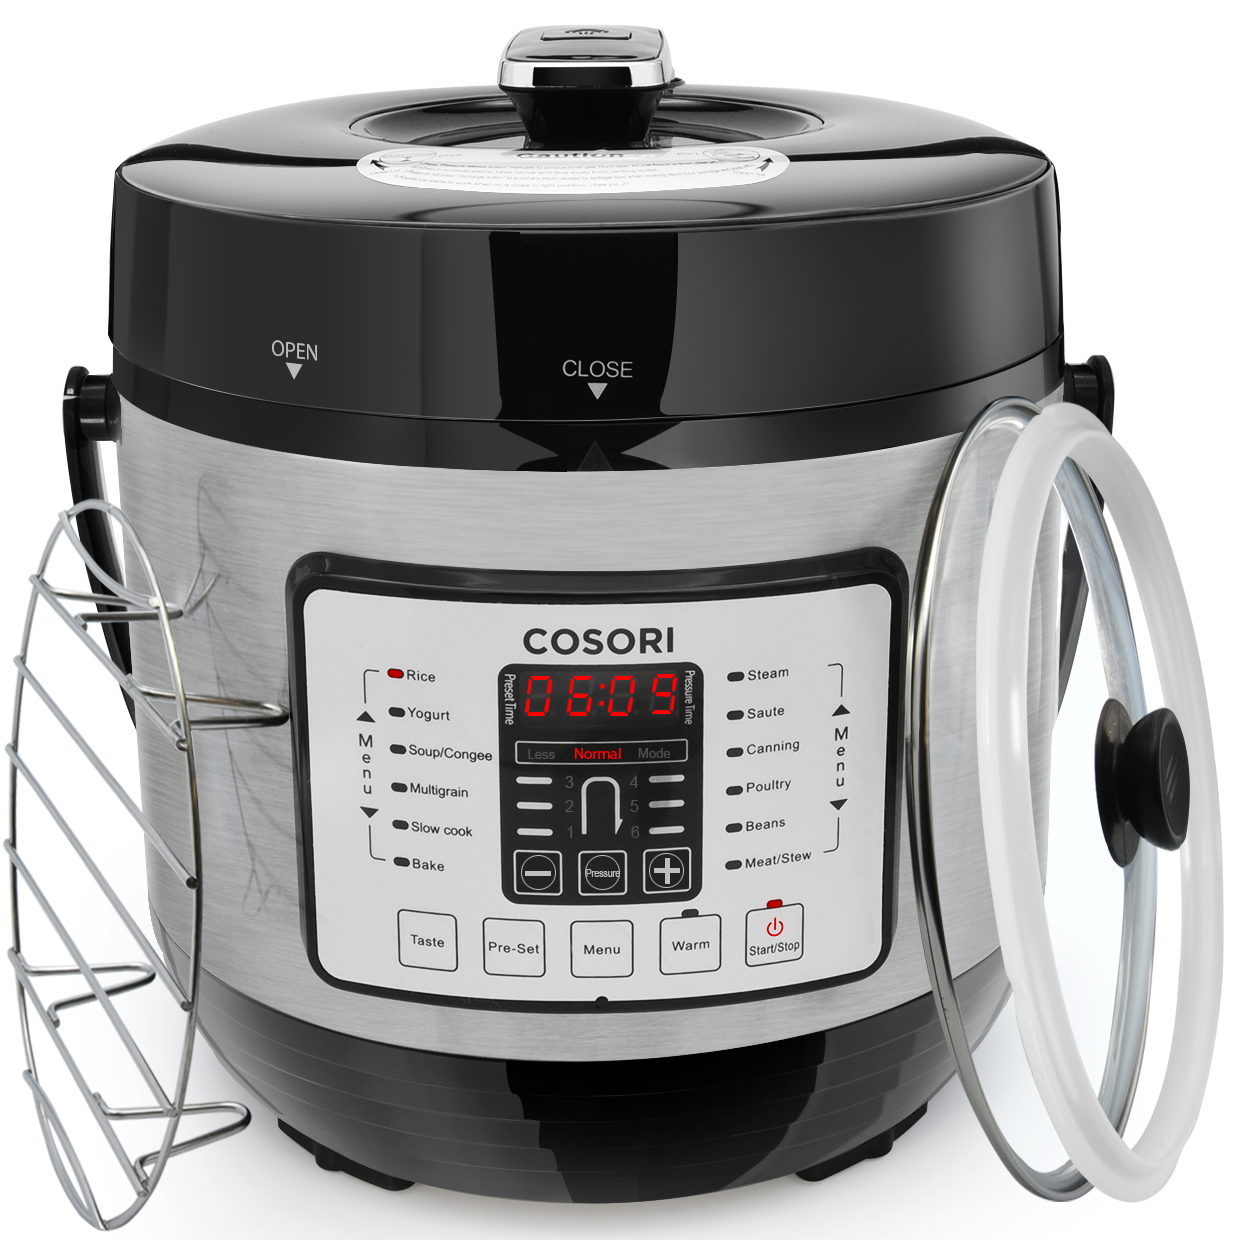 1.0_CA_HOHASA07EC_Cosori Electric Pressure Cooker C2126-PC (1).jpg